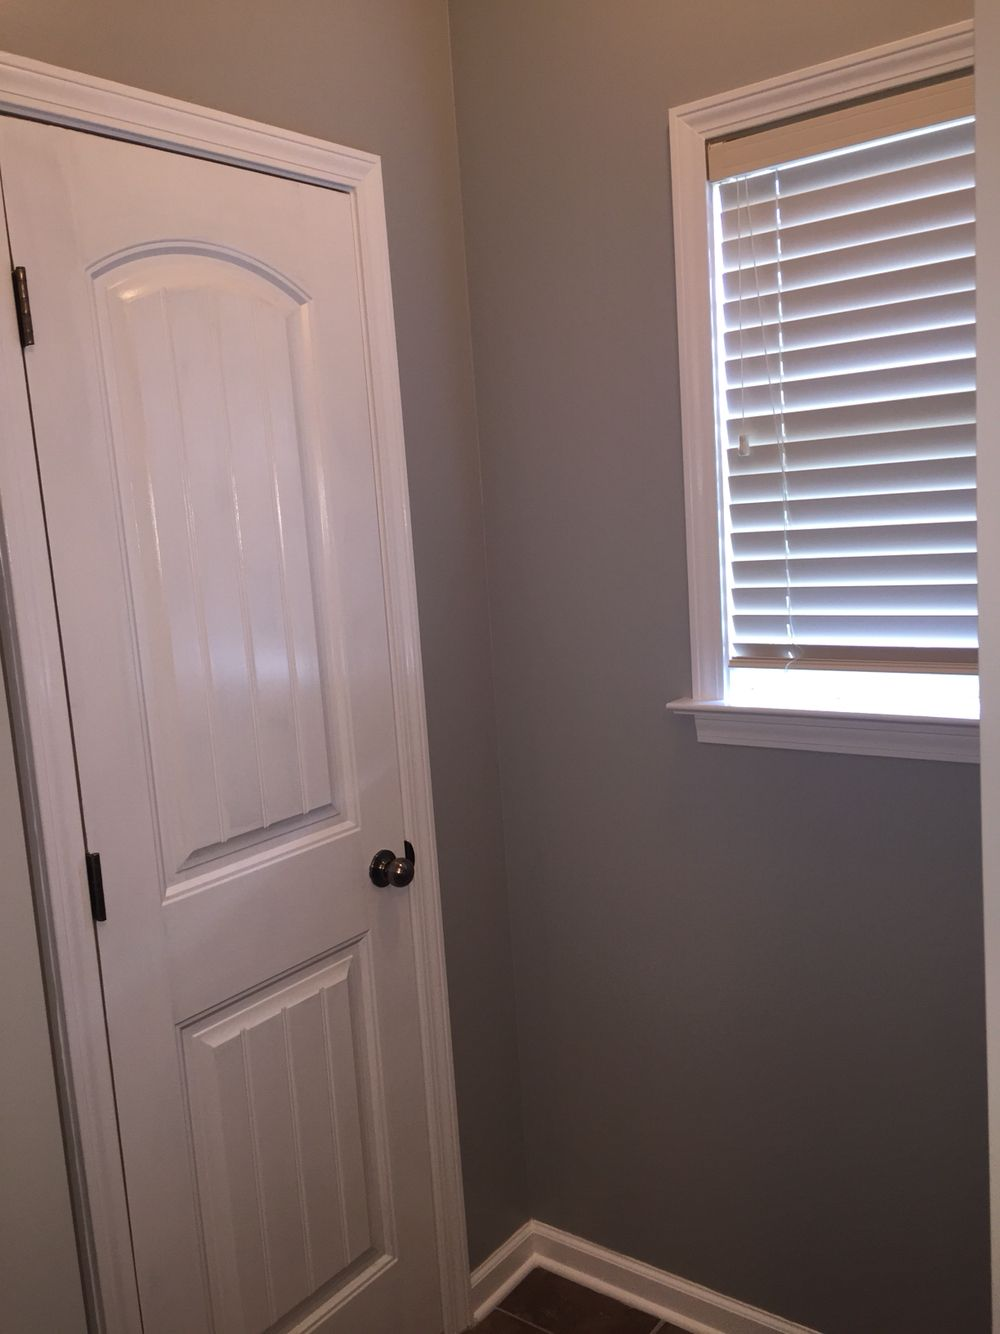 Urban Sunrise By Valspar With Bright White Trim All Painted With Valspar Reserve Room Paint Family Room White Trim